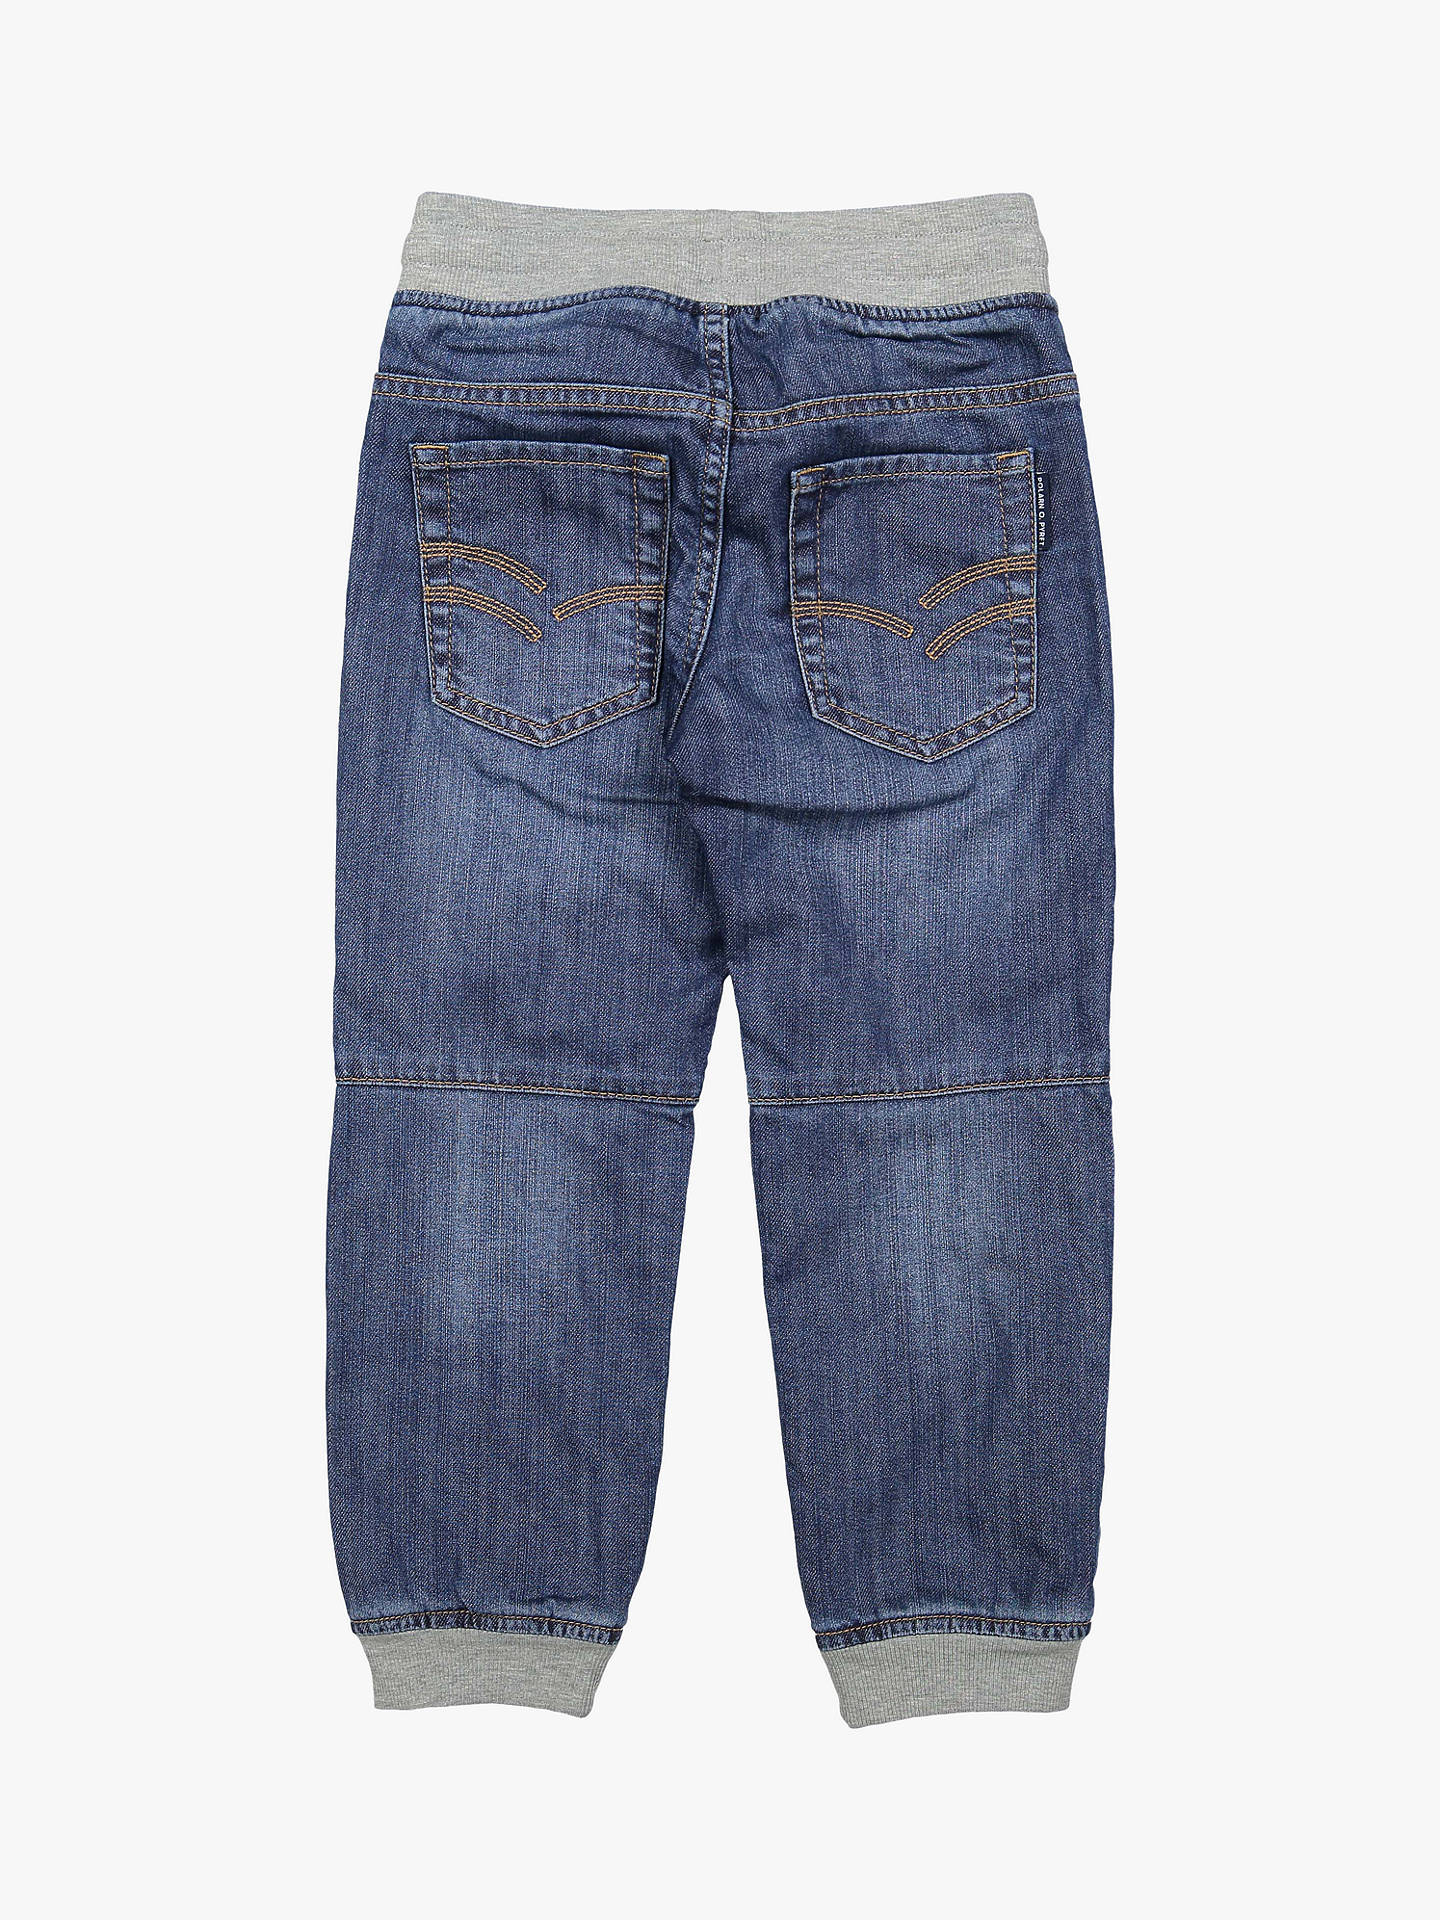 Buy Polarn O. Pyret Children's Denim Jogger Jeans, Blue, 2-3 years Online at johnlewis.com